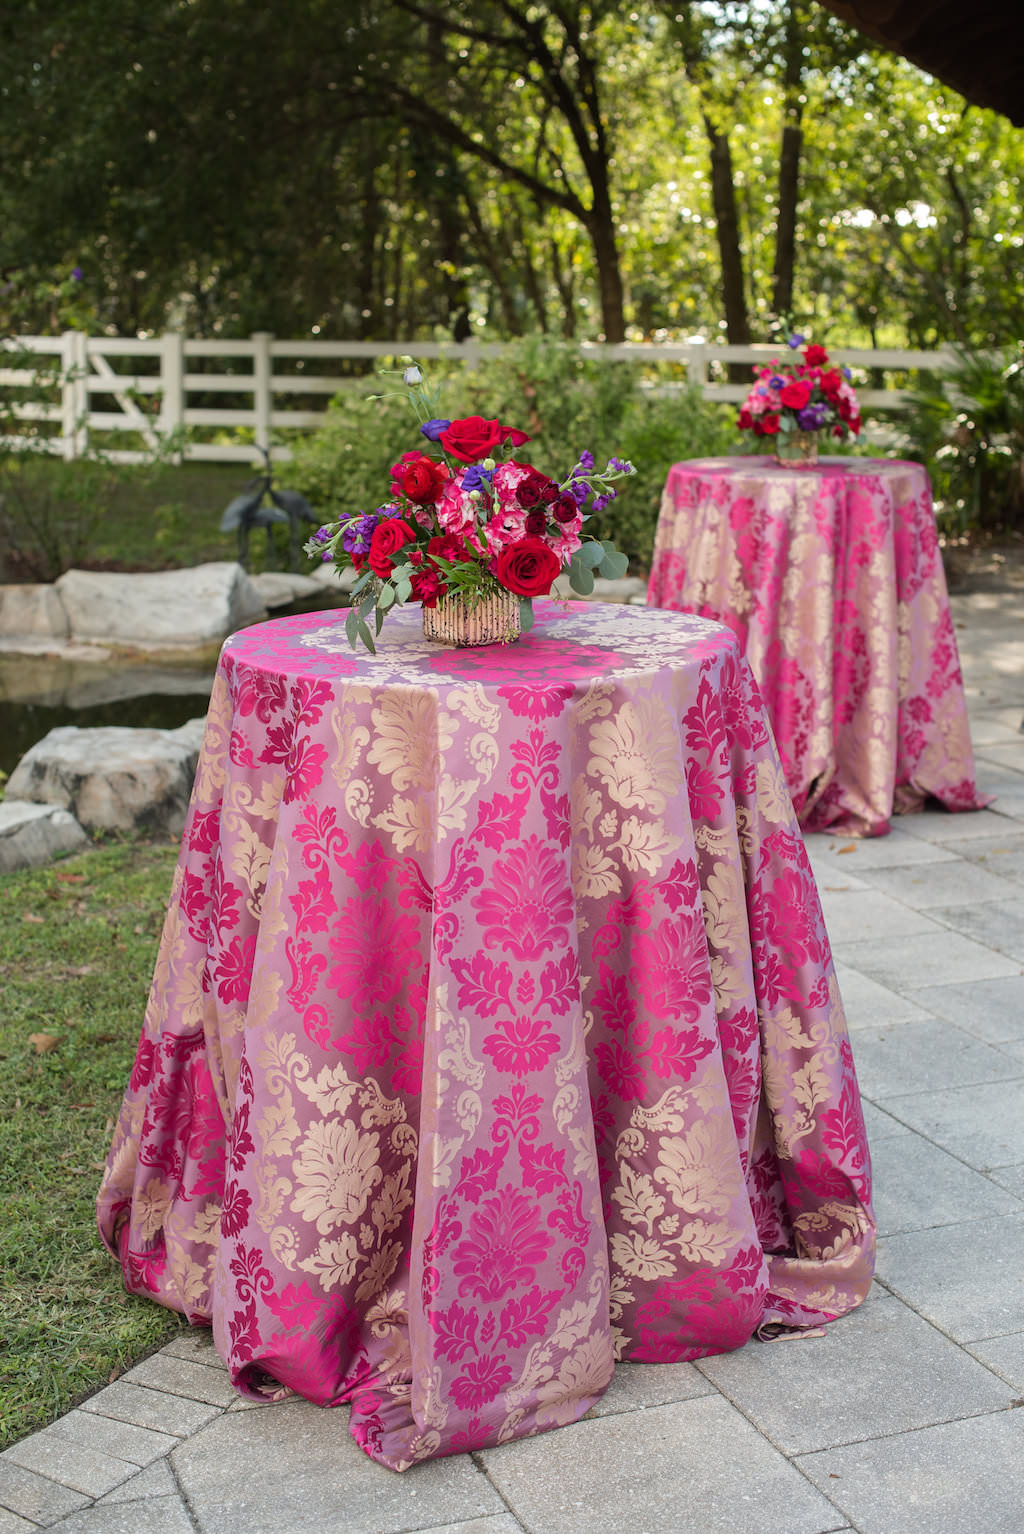 Colorful Outdoor Wedding Cocktail Reception Decor with Centerpieces with Red Roses, Pink, and Purple Flowers and Greenery on Pink and Gold Paisley Table Cloths | Northside Florist | Over the Top Rental Linens